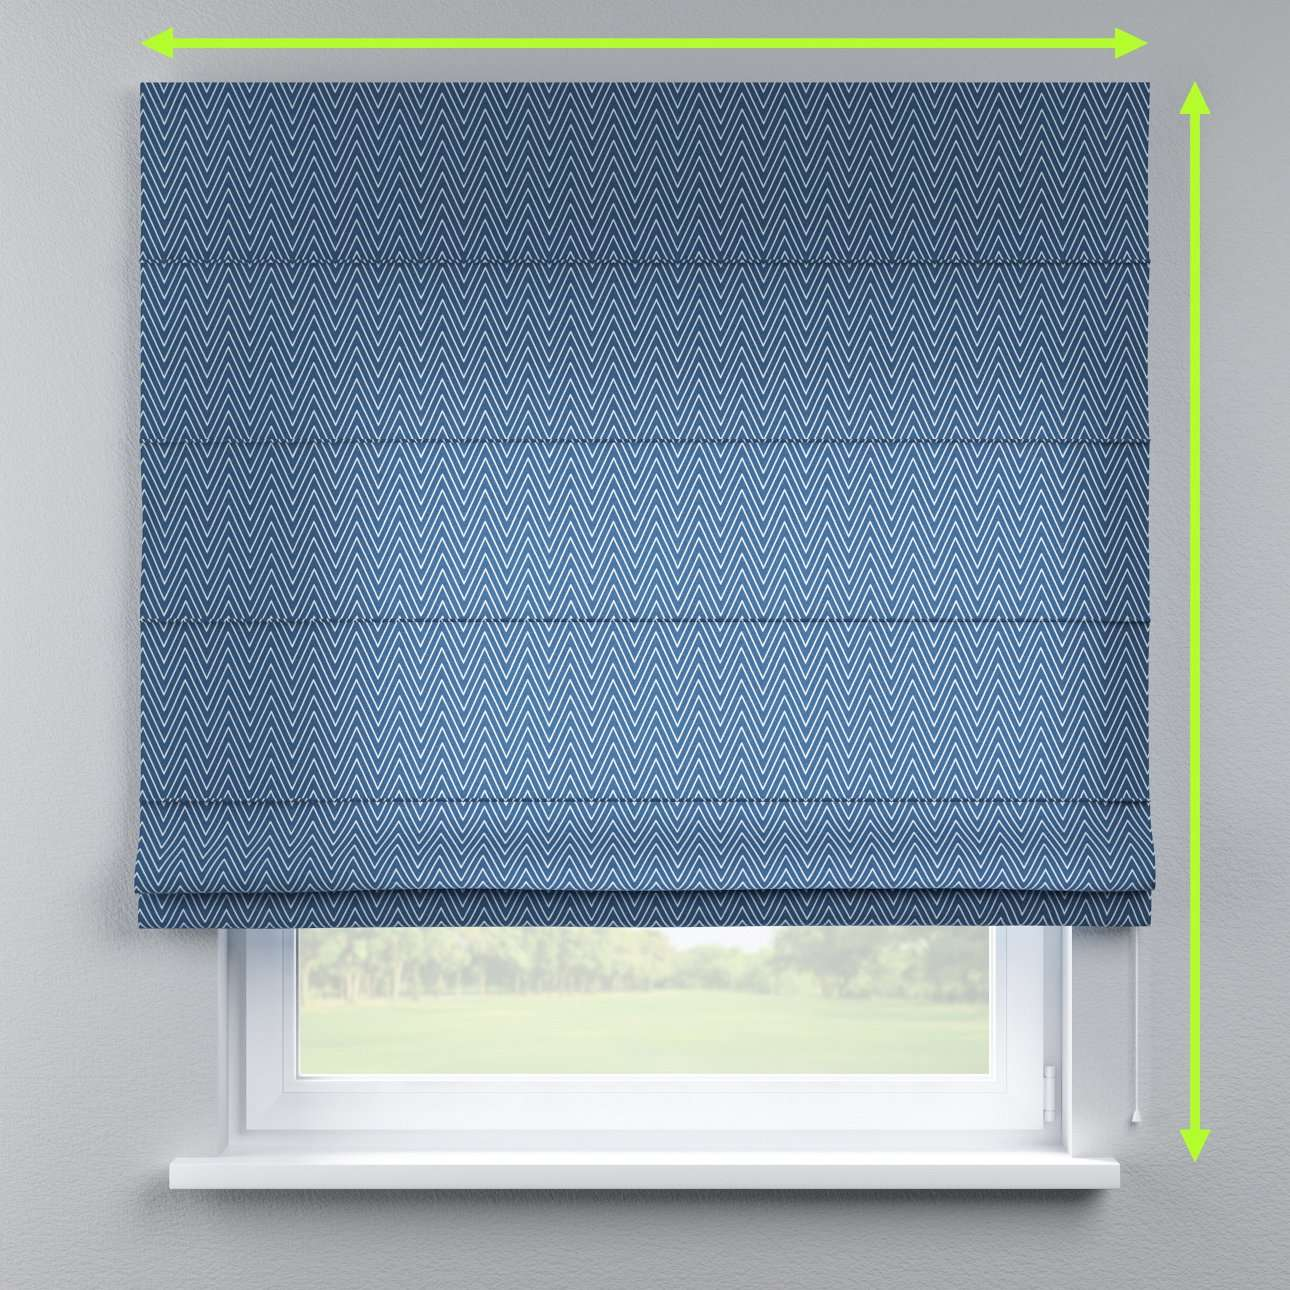 Lined roman blind in collection Brooklyn, fabric: 137-88